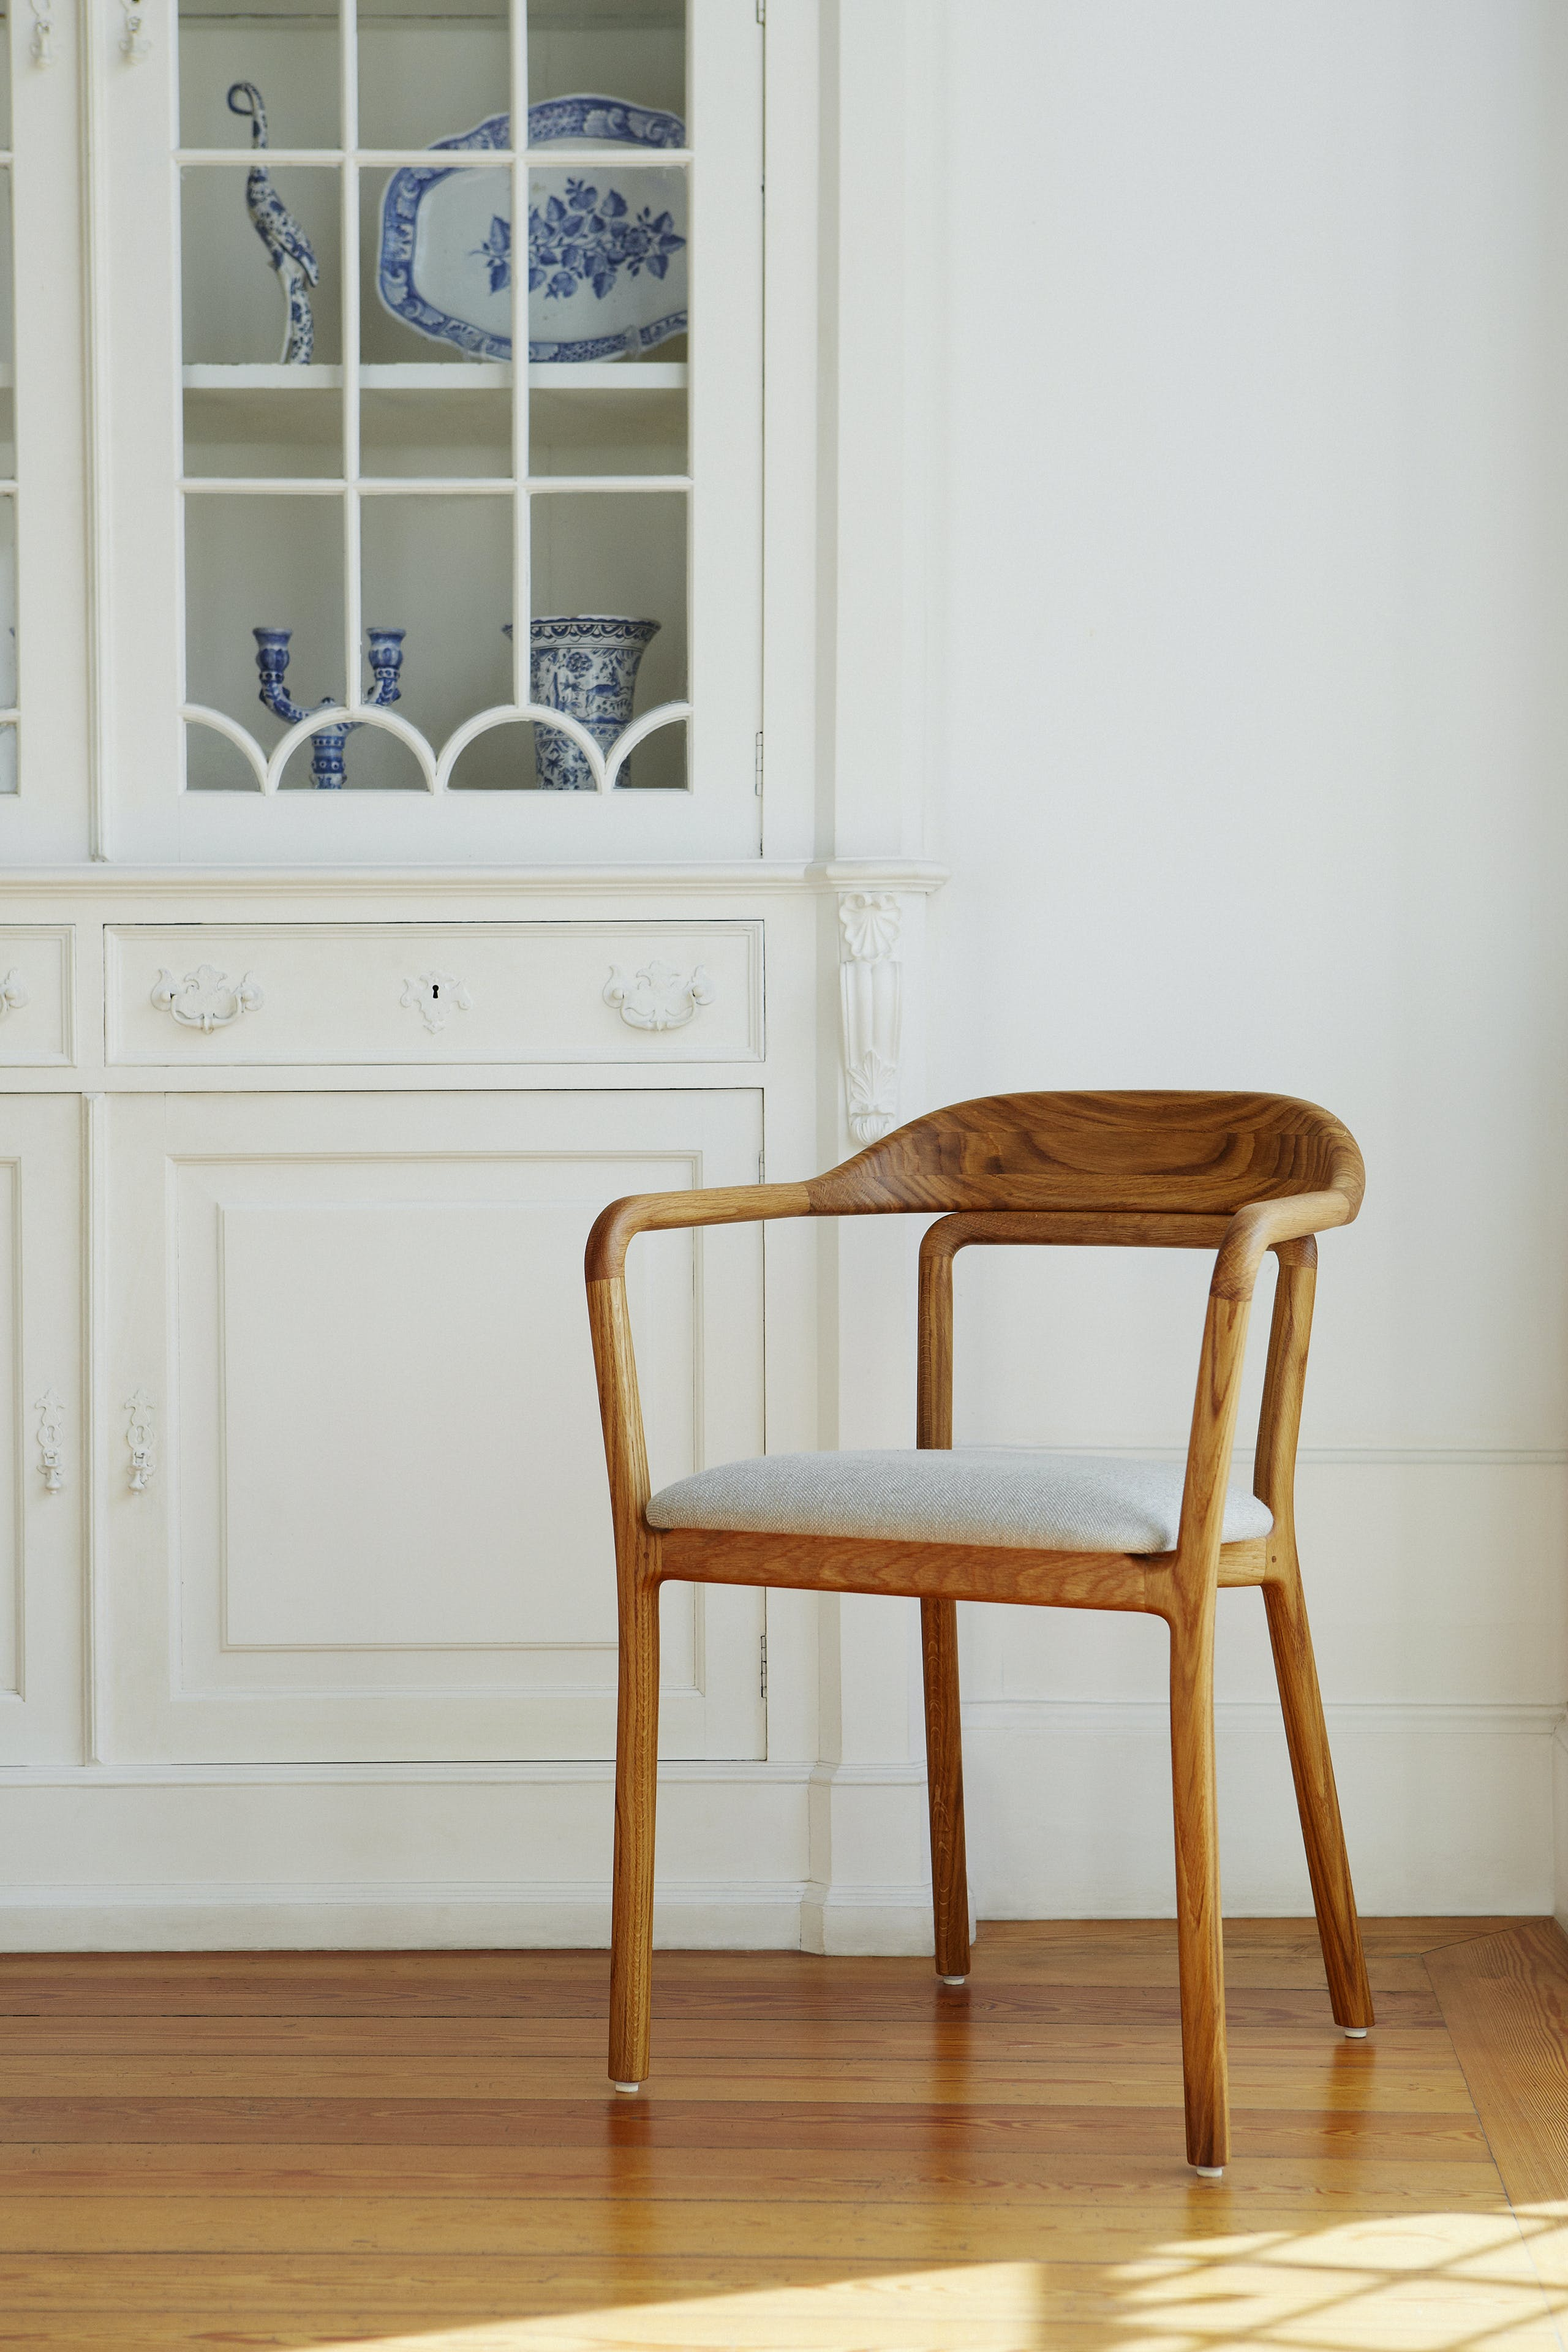 Duet Chair By Neri Hu 2 Photo By Yuki Sugiura